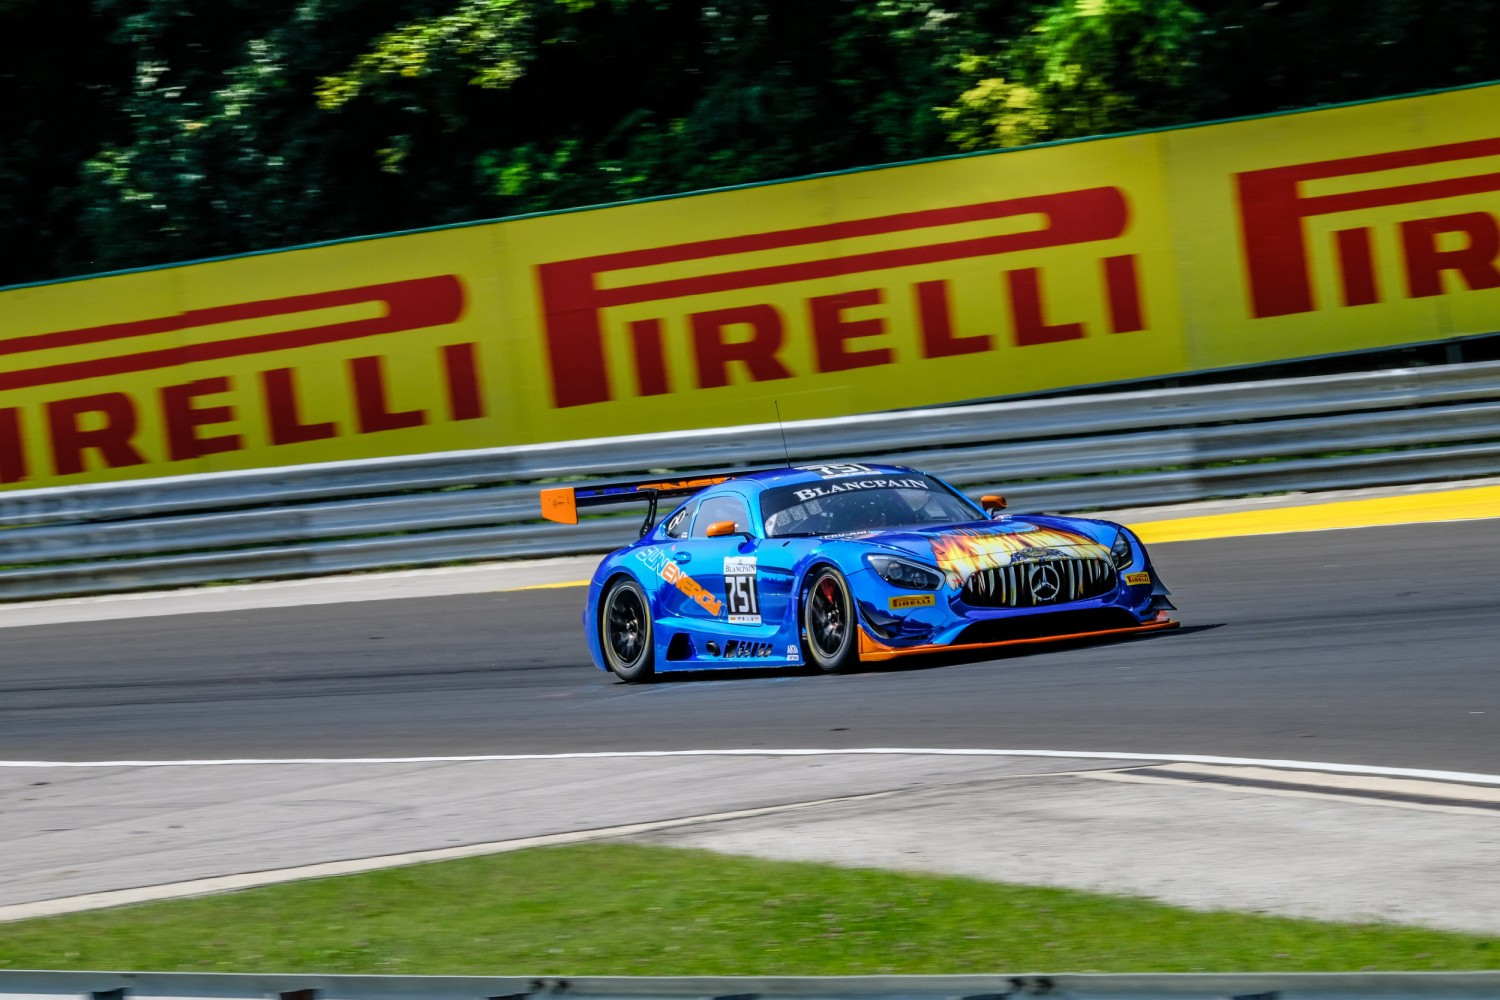 #751 Sun Energy 1 by AKKA ASP Team FRA Mercedes-AMG GT3 Pro-Am Cup Kenny Habul AUS Tristan Vautier FRA, Free Practice 1  | SRO / Dirk Bogaerts Photography